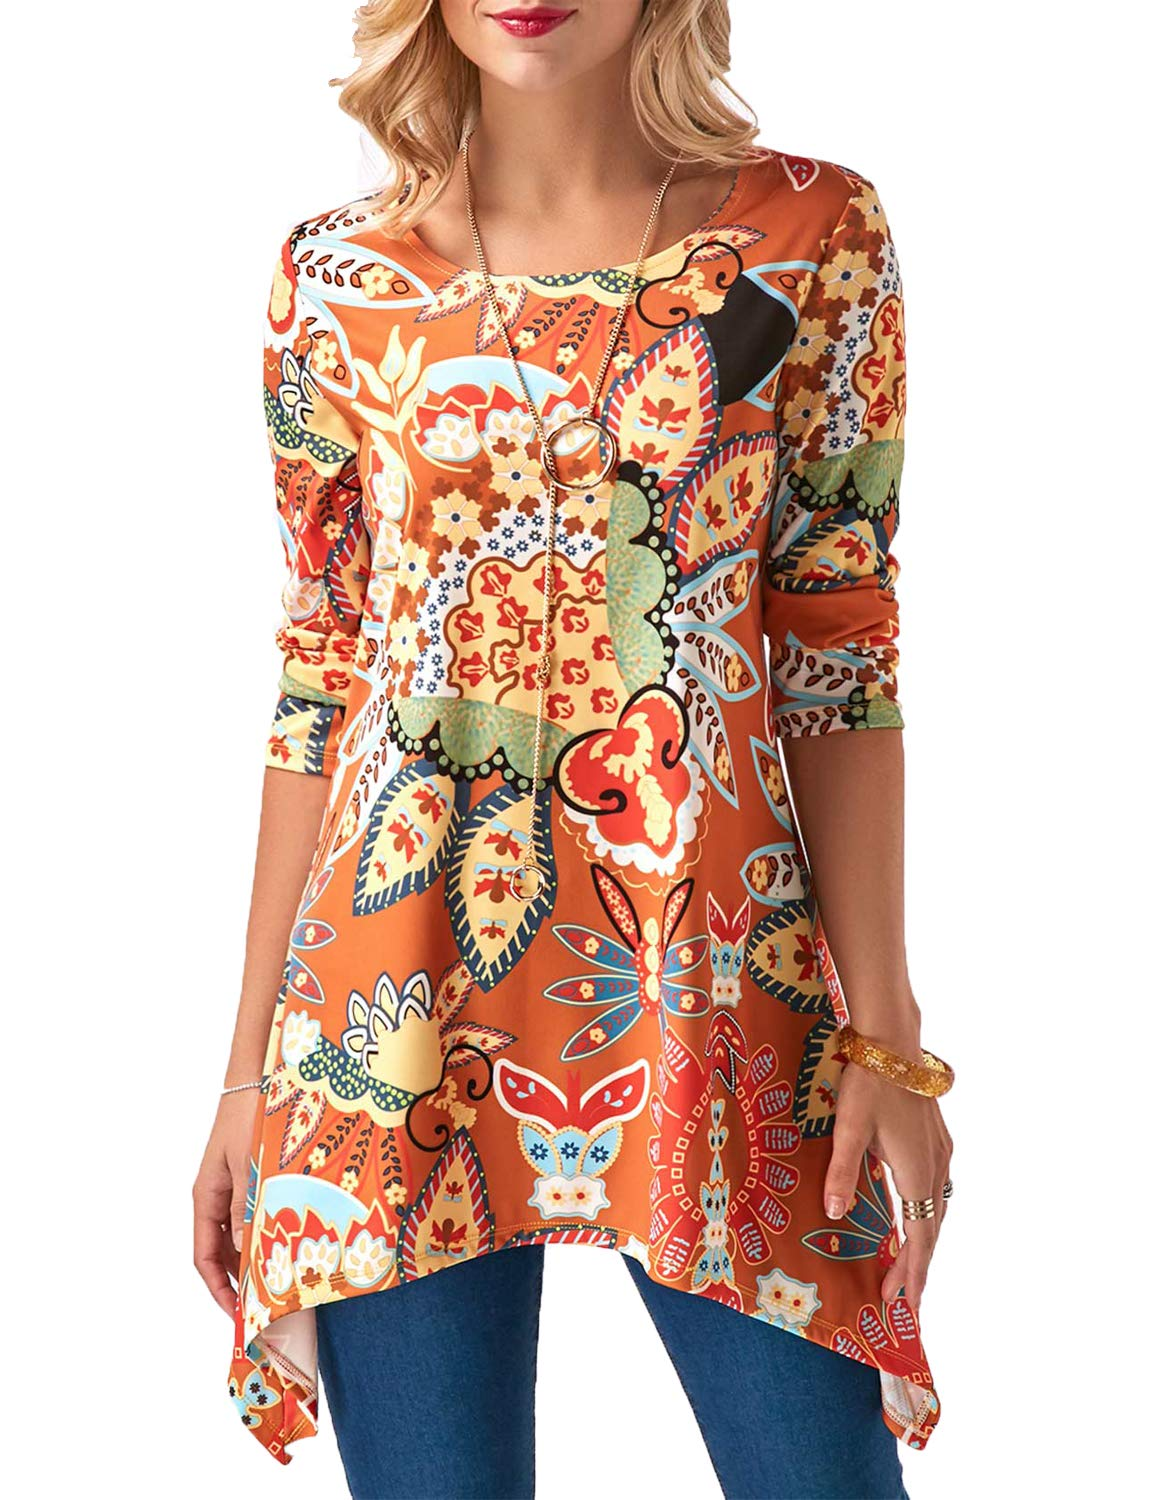 Sweetnight Womens Asymmetrical Casual T Shirt 3/4 Sleeve Floral Print Swing Tunic Tops (Orange, L)